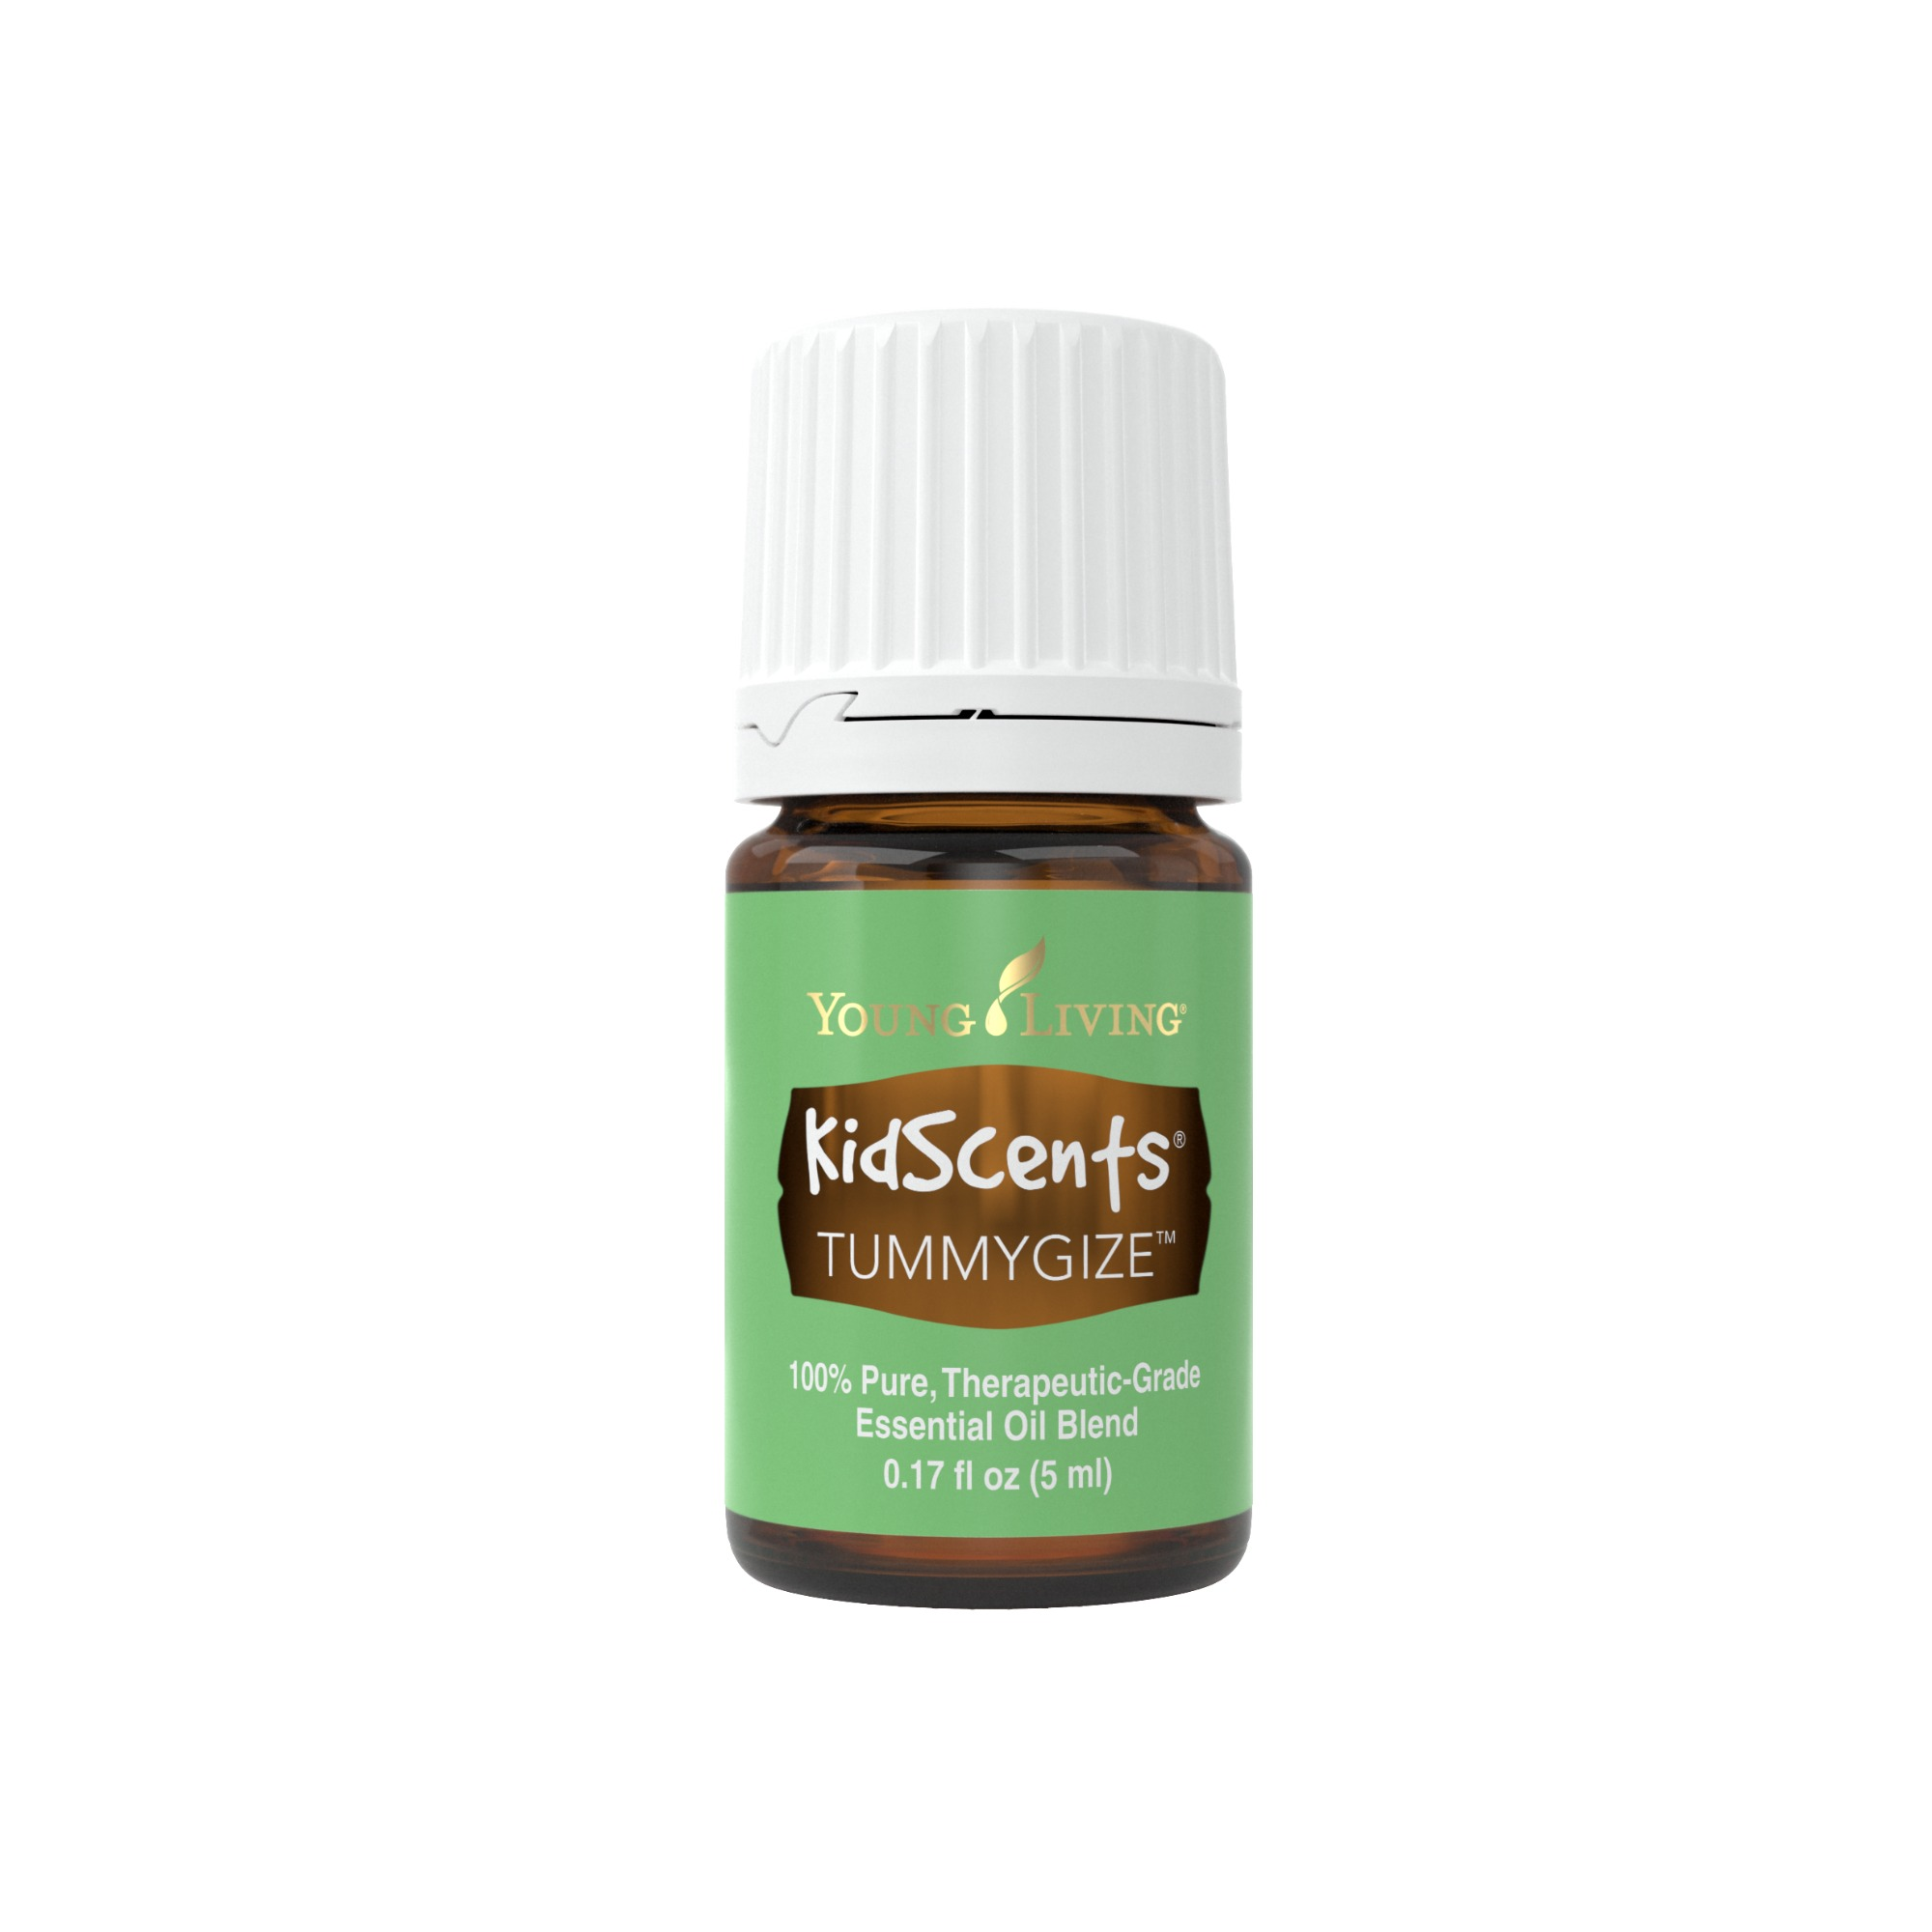 TUMMYGIZE ESSENTIAL OIL    TummyGize is a relaxing, quieting blend that can be applied to your child's tummy. This is a great one to have on hand after meals, before bed, or when your child is experiencing diet changes. Since it's pre-diluted, it's great for even the most sensitive skin. Apply on the tummy, feet, and lower back.   Click here   to learn more about this product.